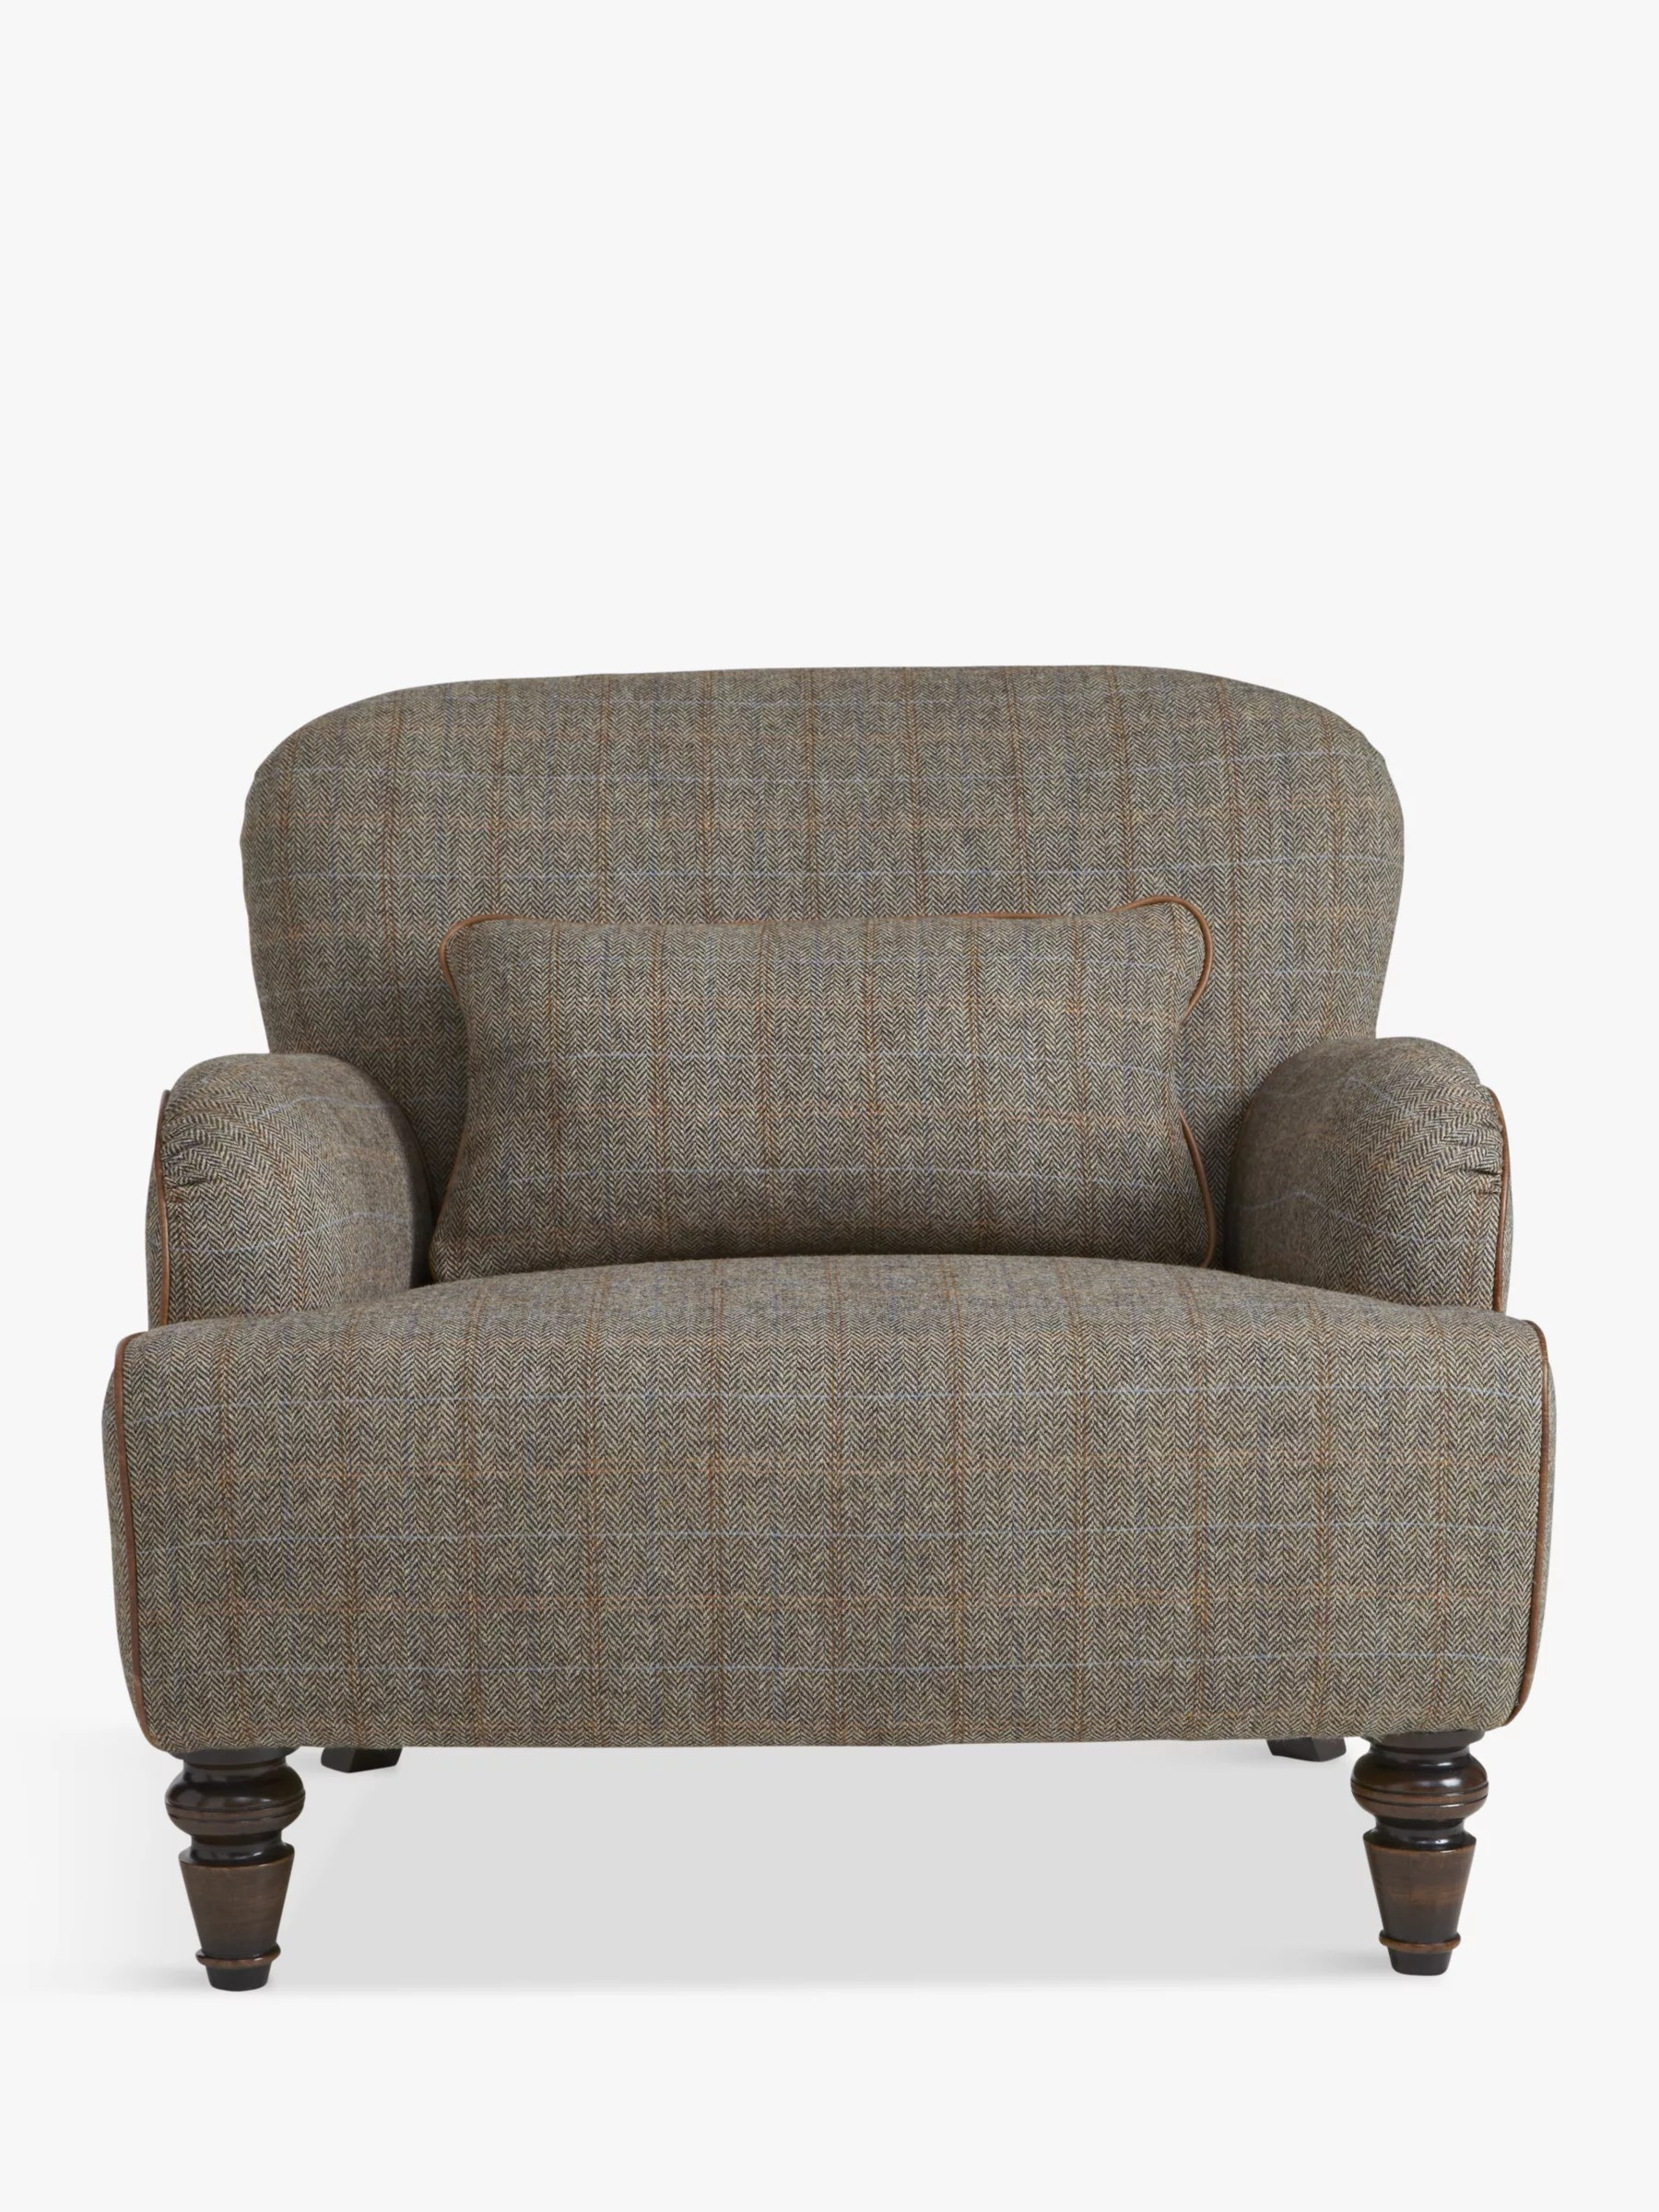 Tweed Chair Brown Tweed Sofa Benchcraft Tanacra Contemporary Sofa